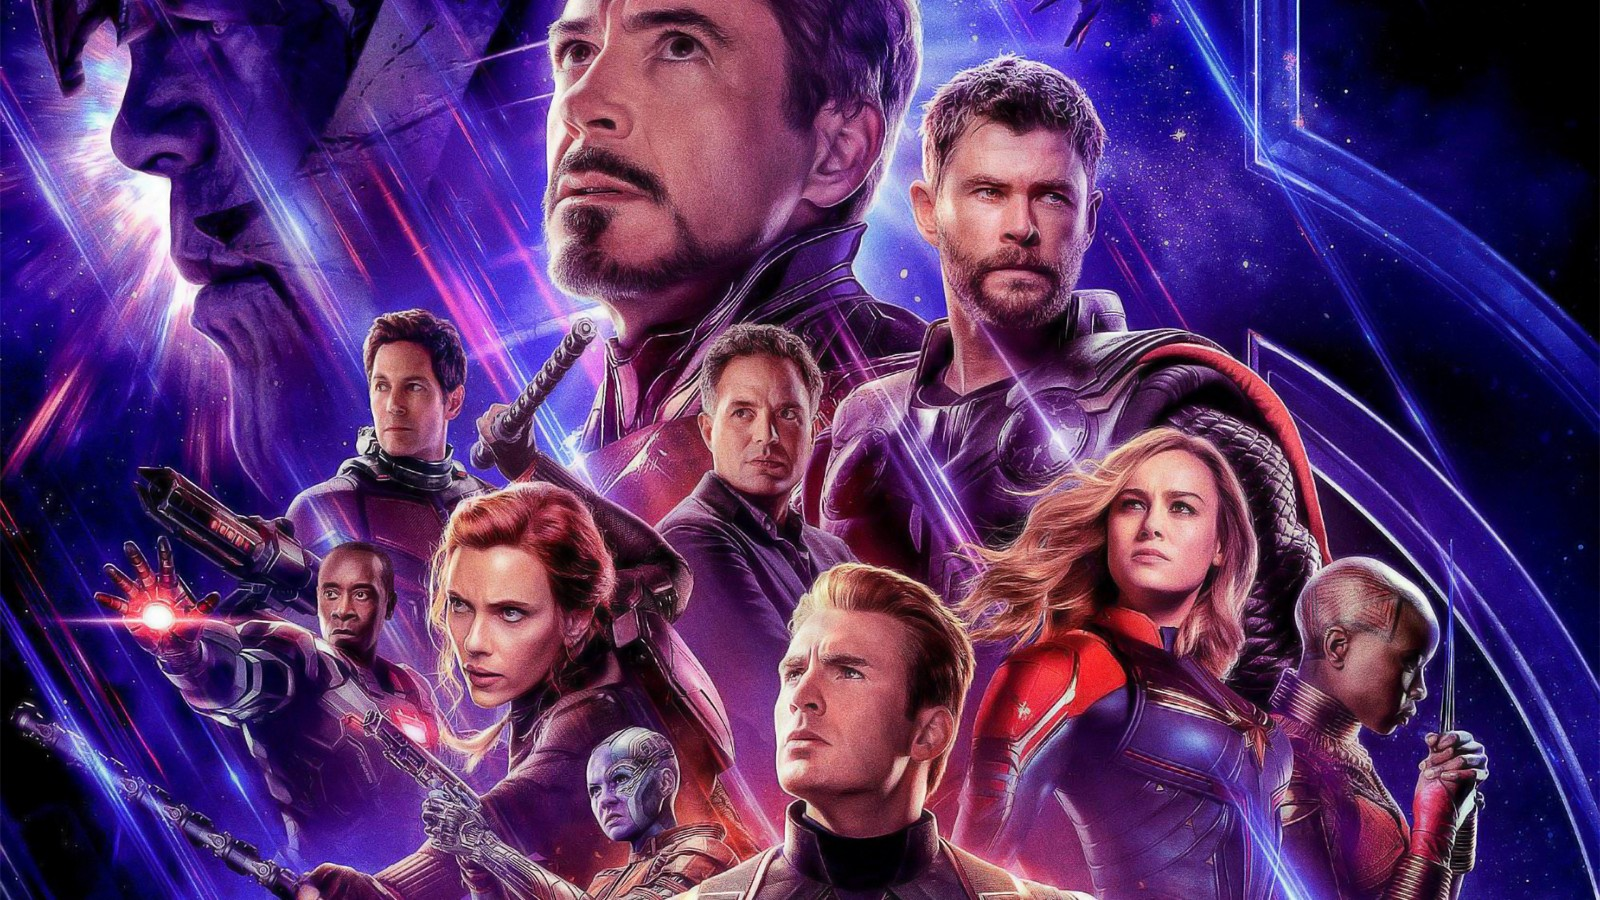 Iphone 7 Wallpaper Official Avengers Endgame Official Poster 4k Wallpapers Hd